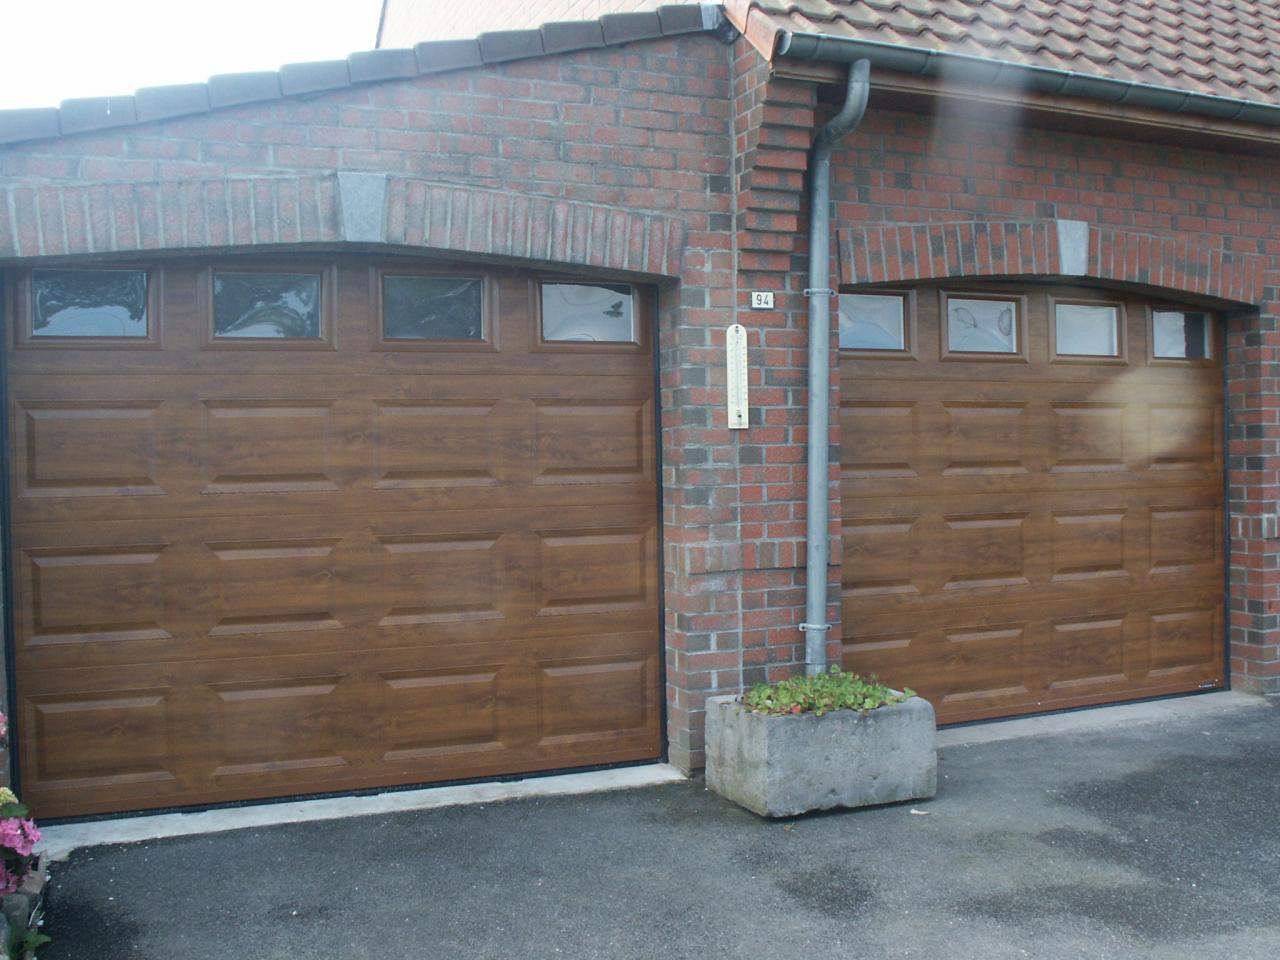 Portes De Garage Novoferm Pieces Detachees Porte De Garage Novoferm Good Cool Porte De